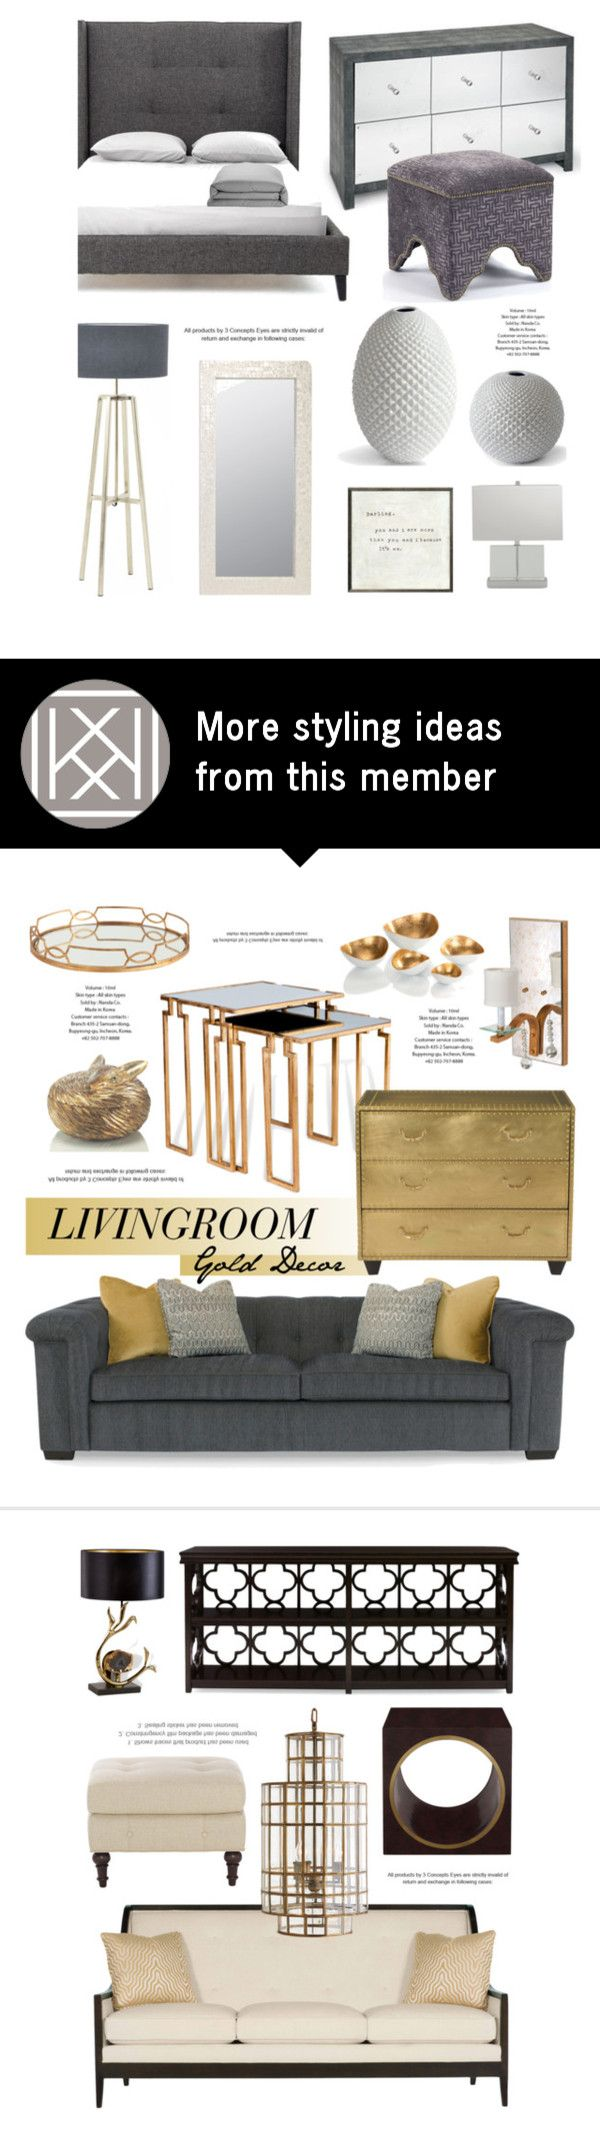 """""""Bedroom In Gray"""" by kathykuohome on Polyvore featuring interior, interiors, interior design, home, home decor, interior decorating, bedroom, Home, homedecor and homedesign"""